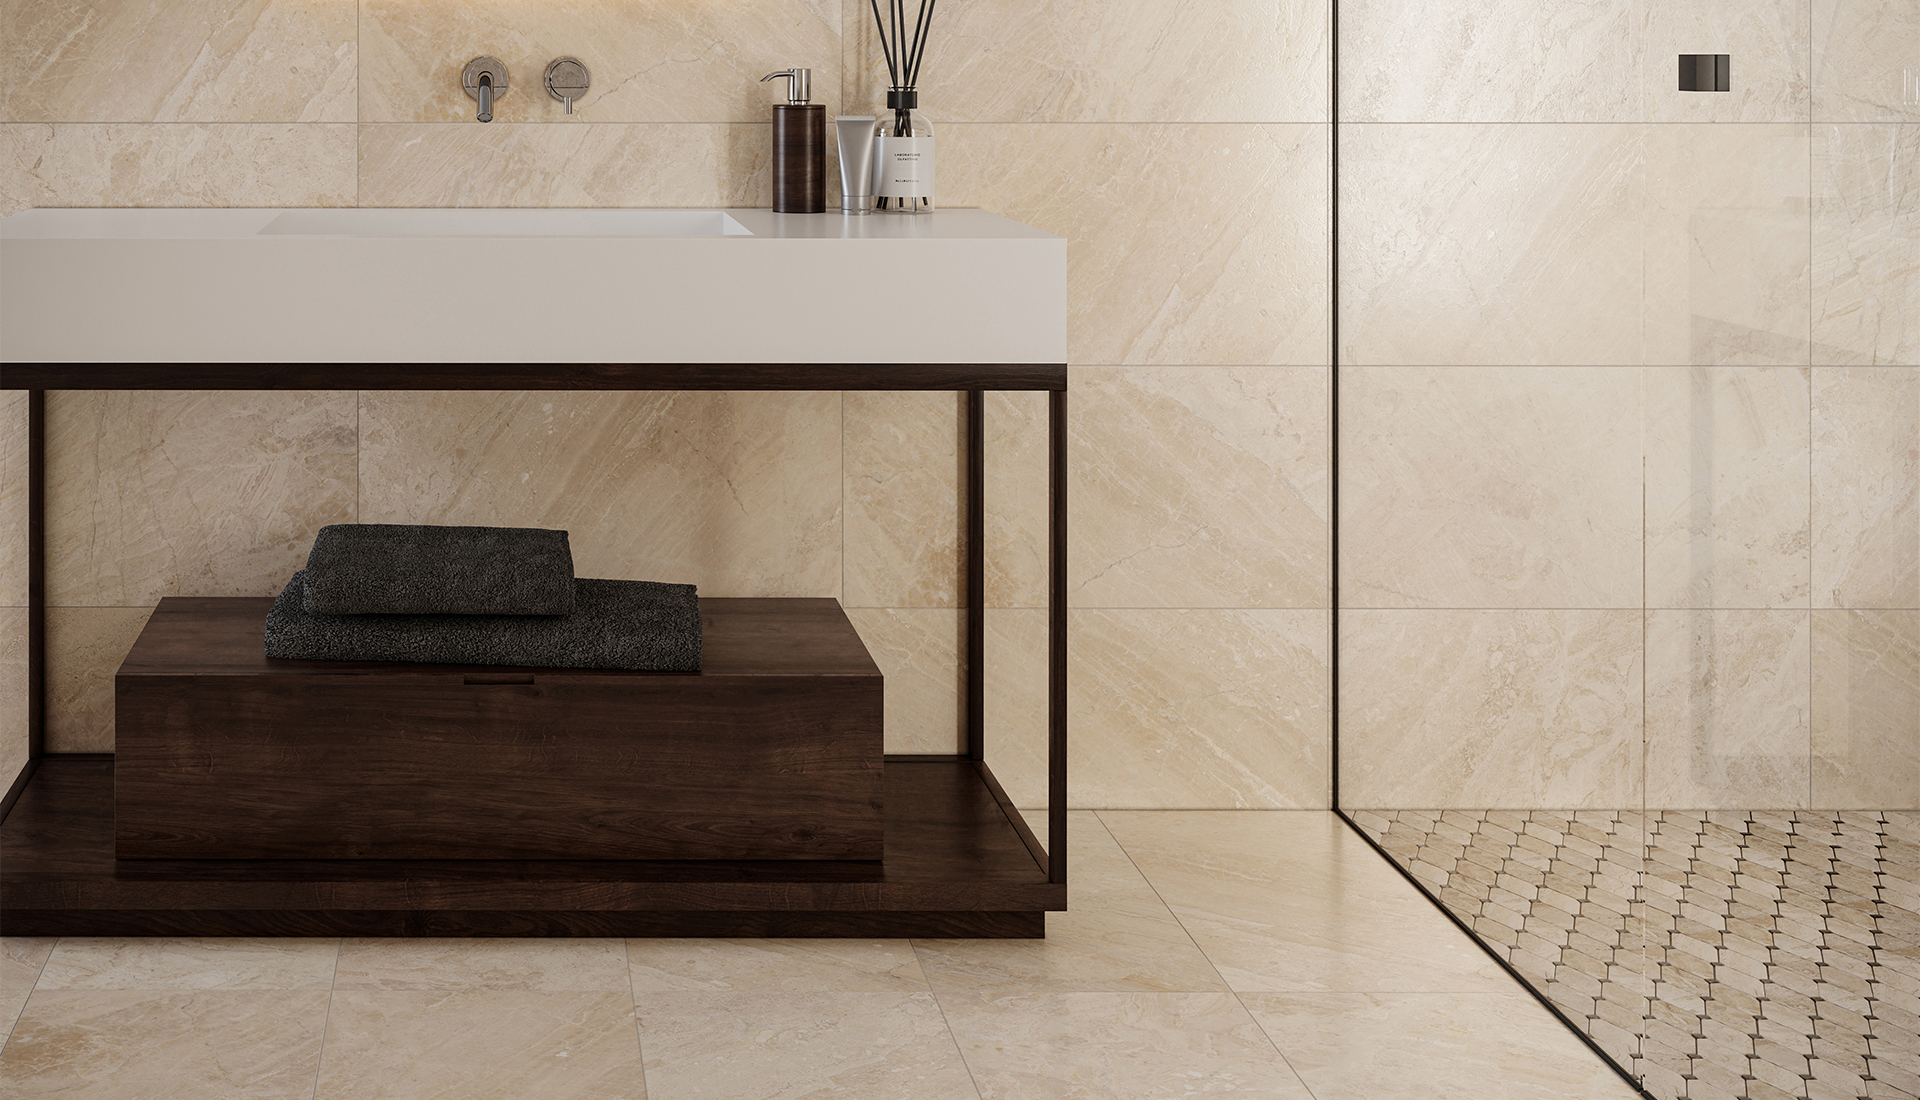 12 x 24 in / 30.5 x 61 cm Impero Reale Honed Marble Tile